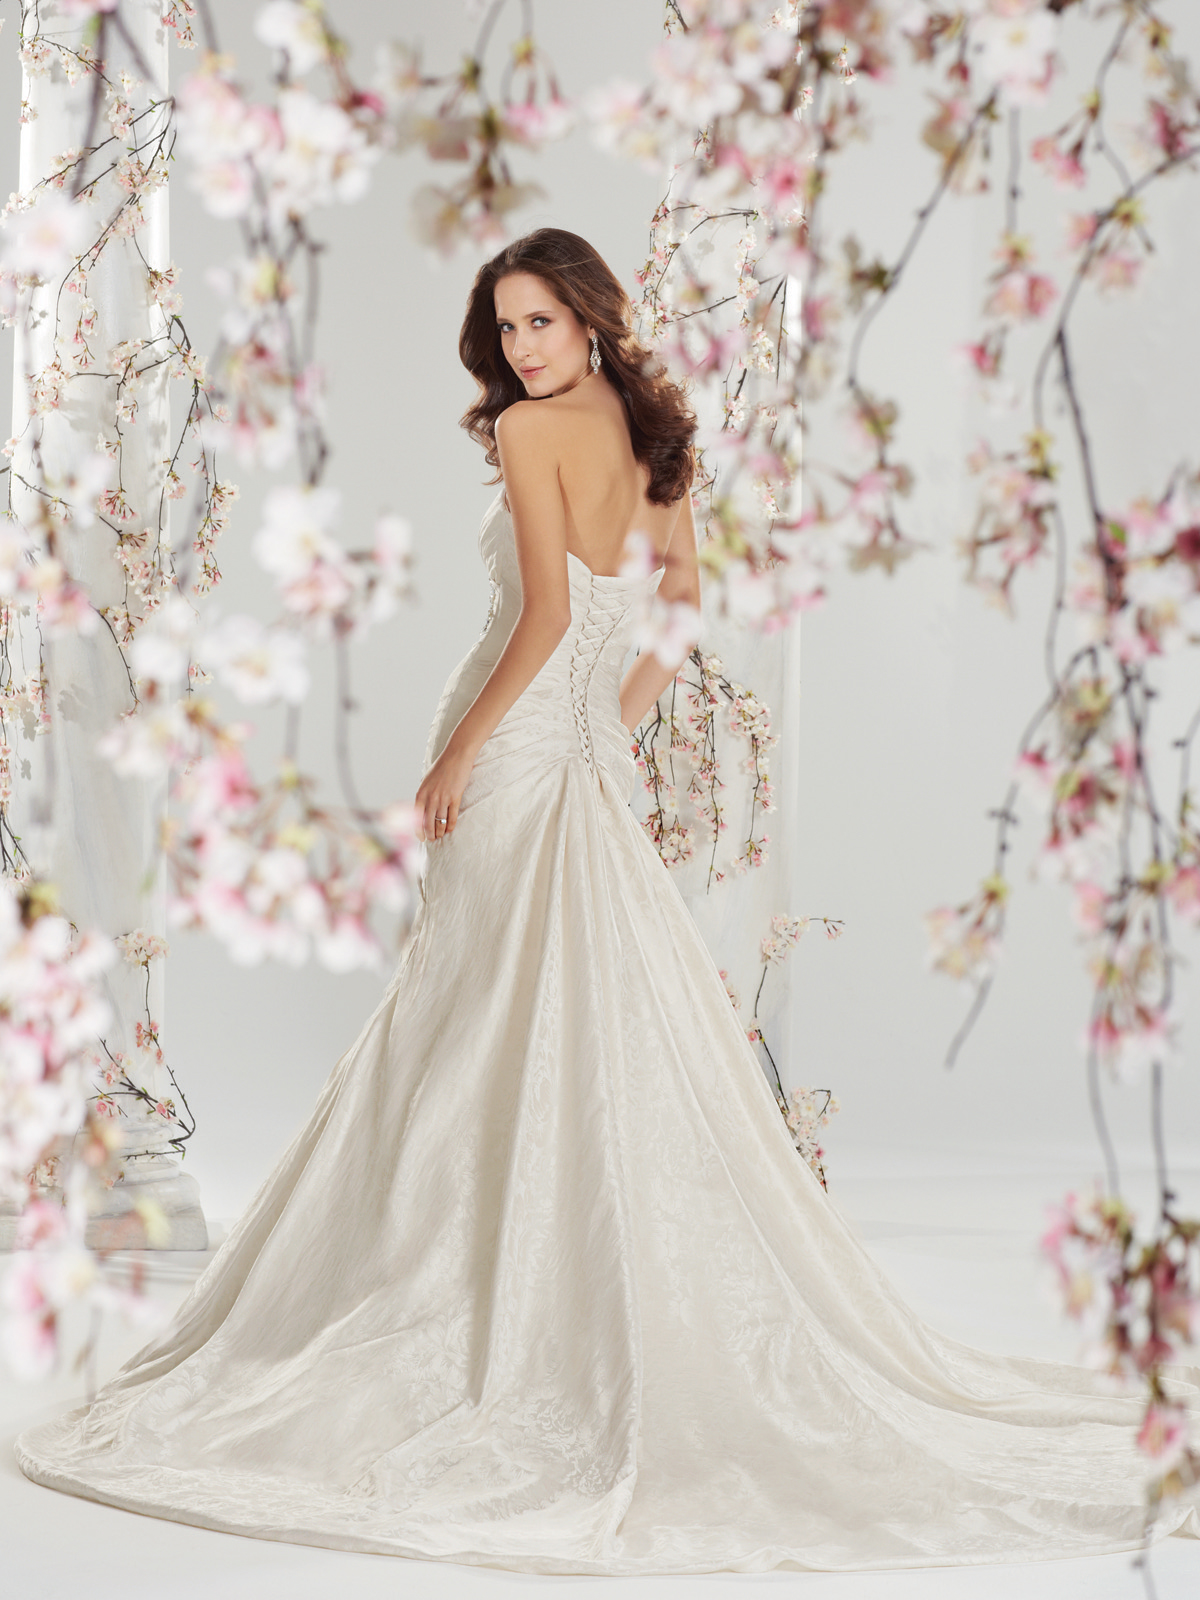 The best wedding dress designers part 10 the best gowns from the most in demand wedding dress designers part 10 junglespirit Choice Image